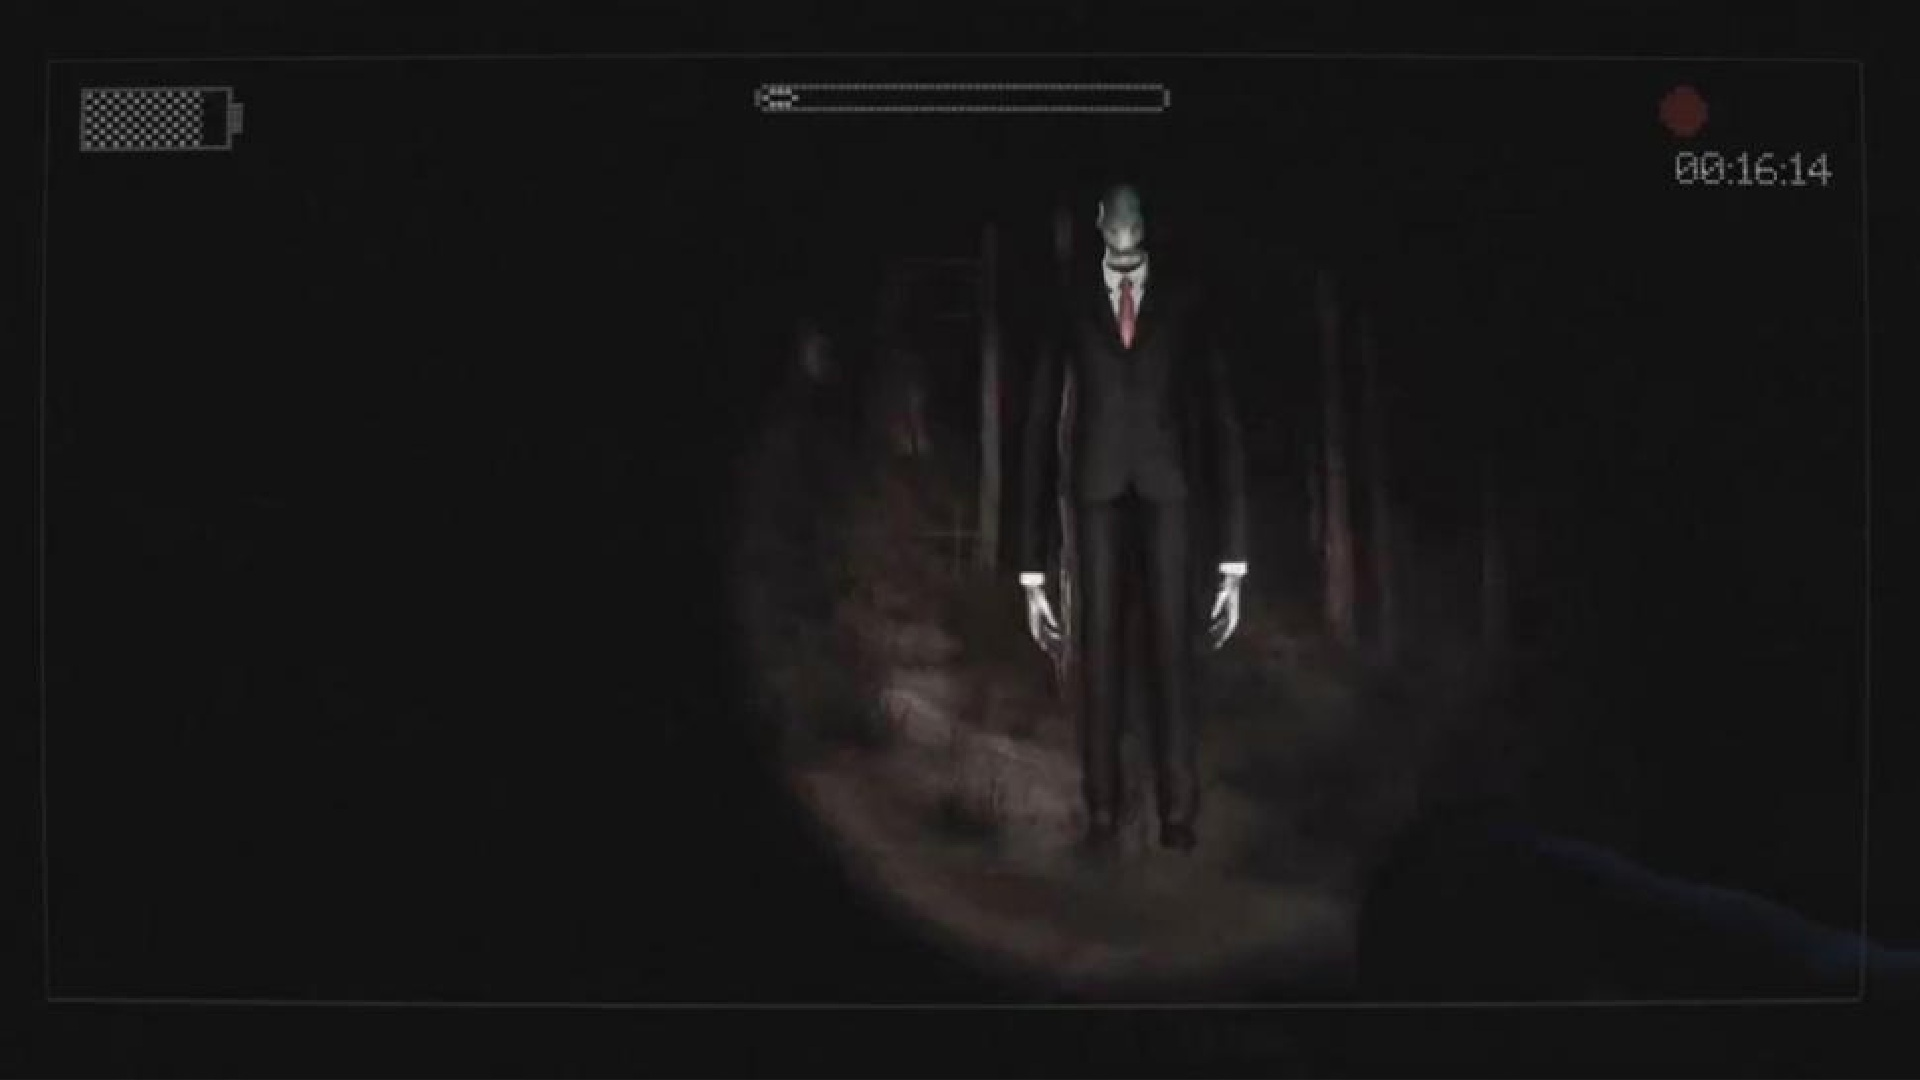 Slender Man | The Slender Man Wiki | FANDOM powered by Wikia